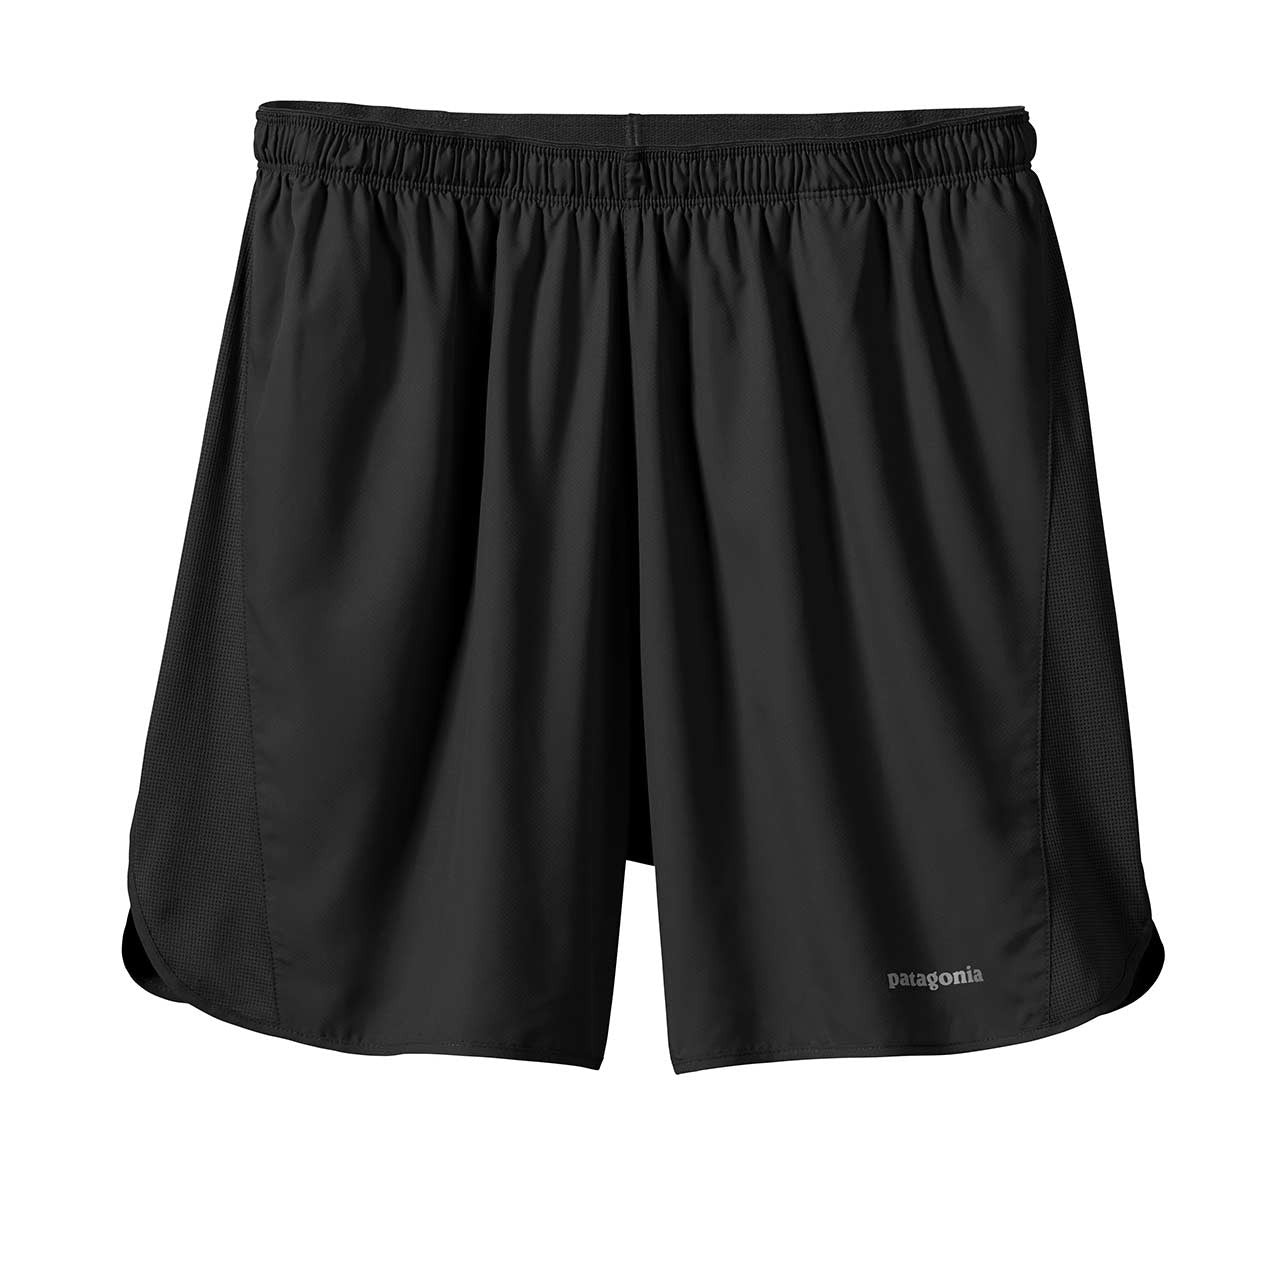 Patagonia_M's Strider Shorts - 7 in._Black_L